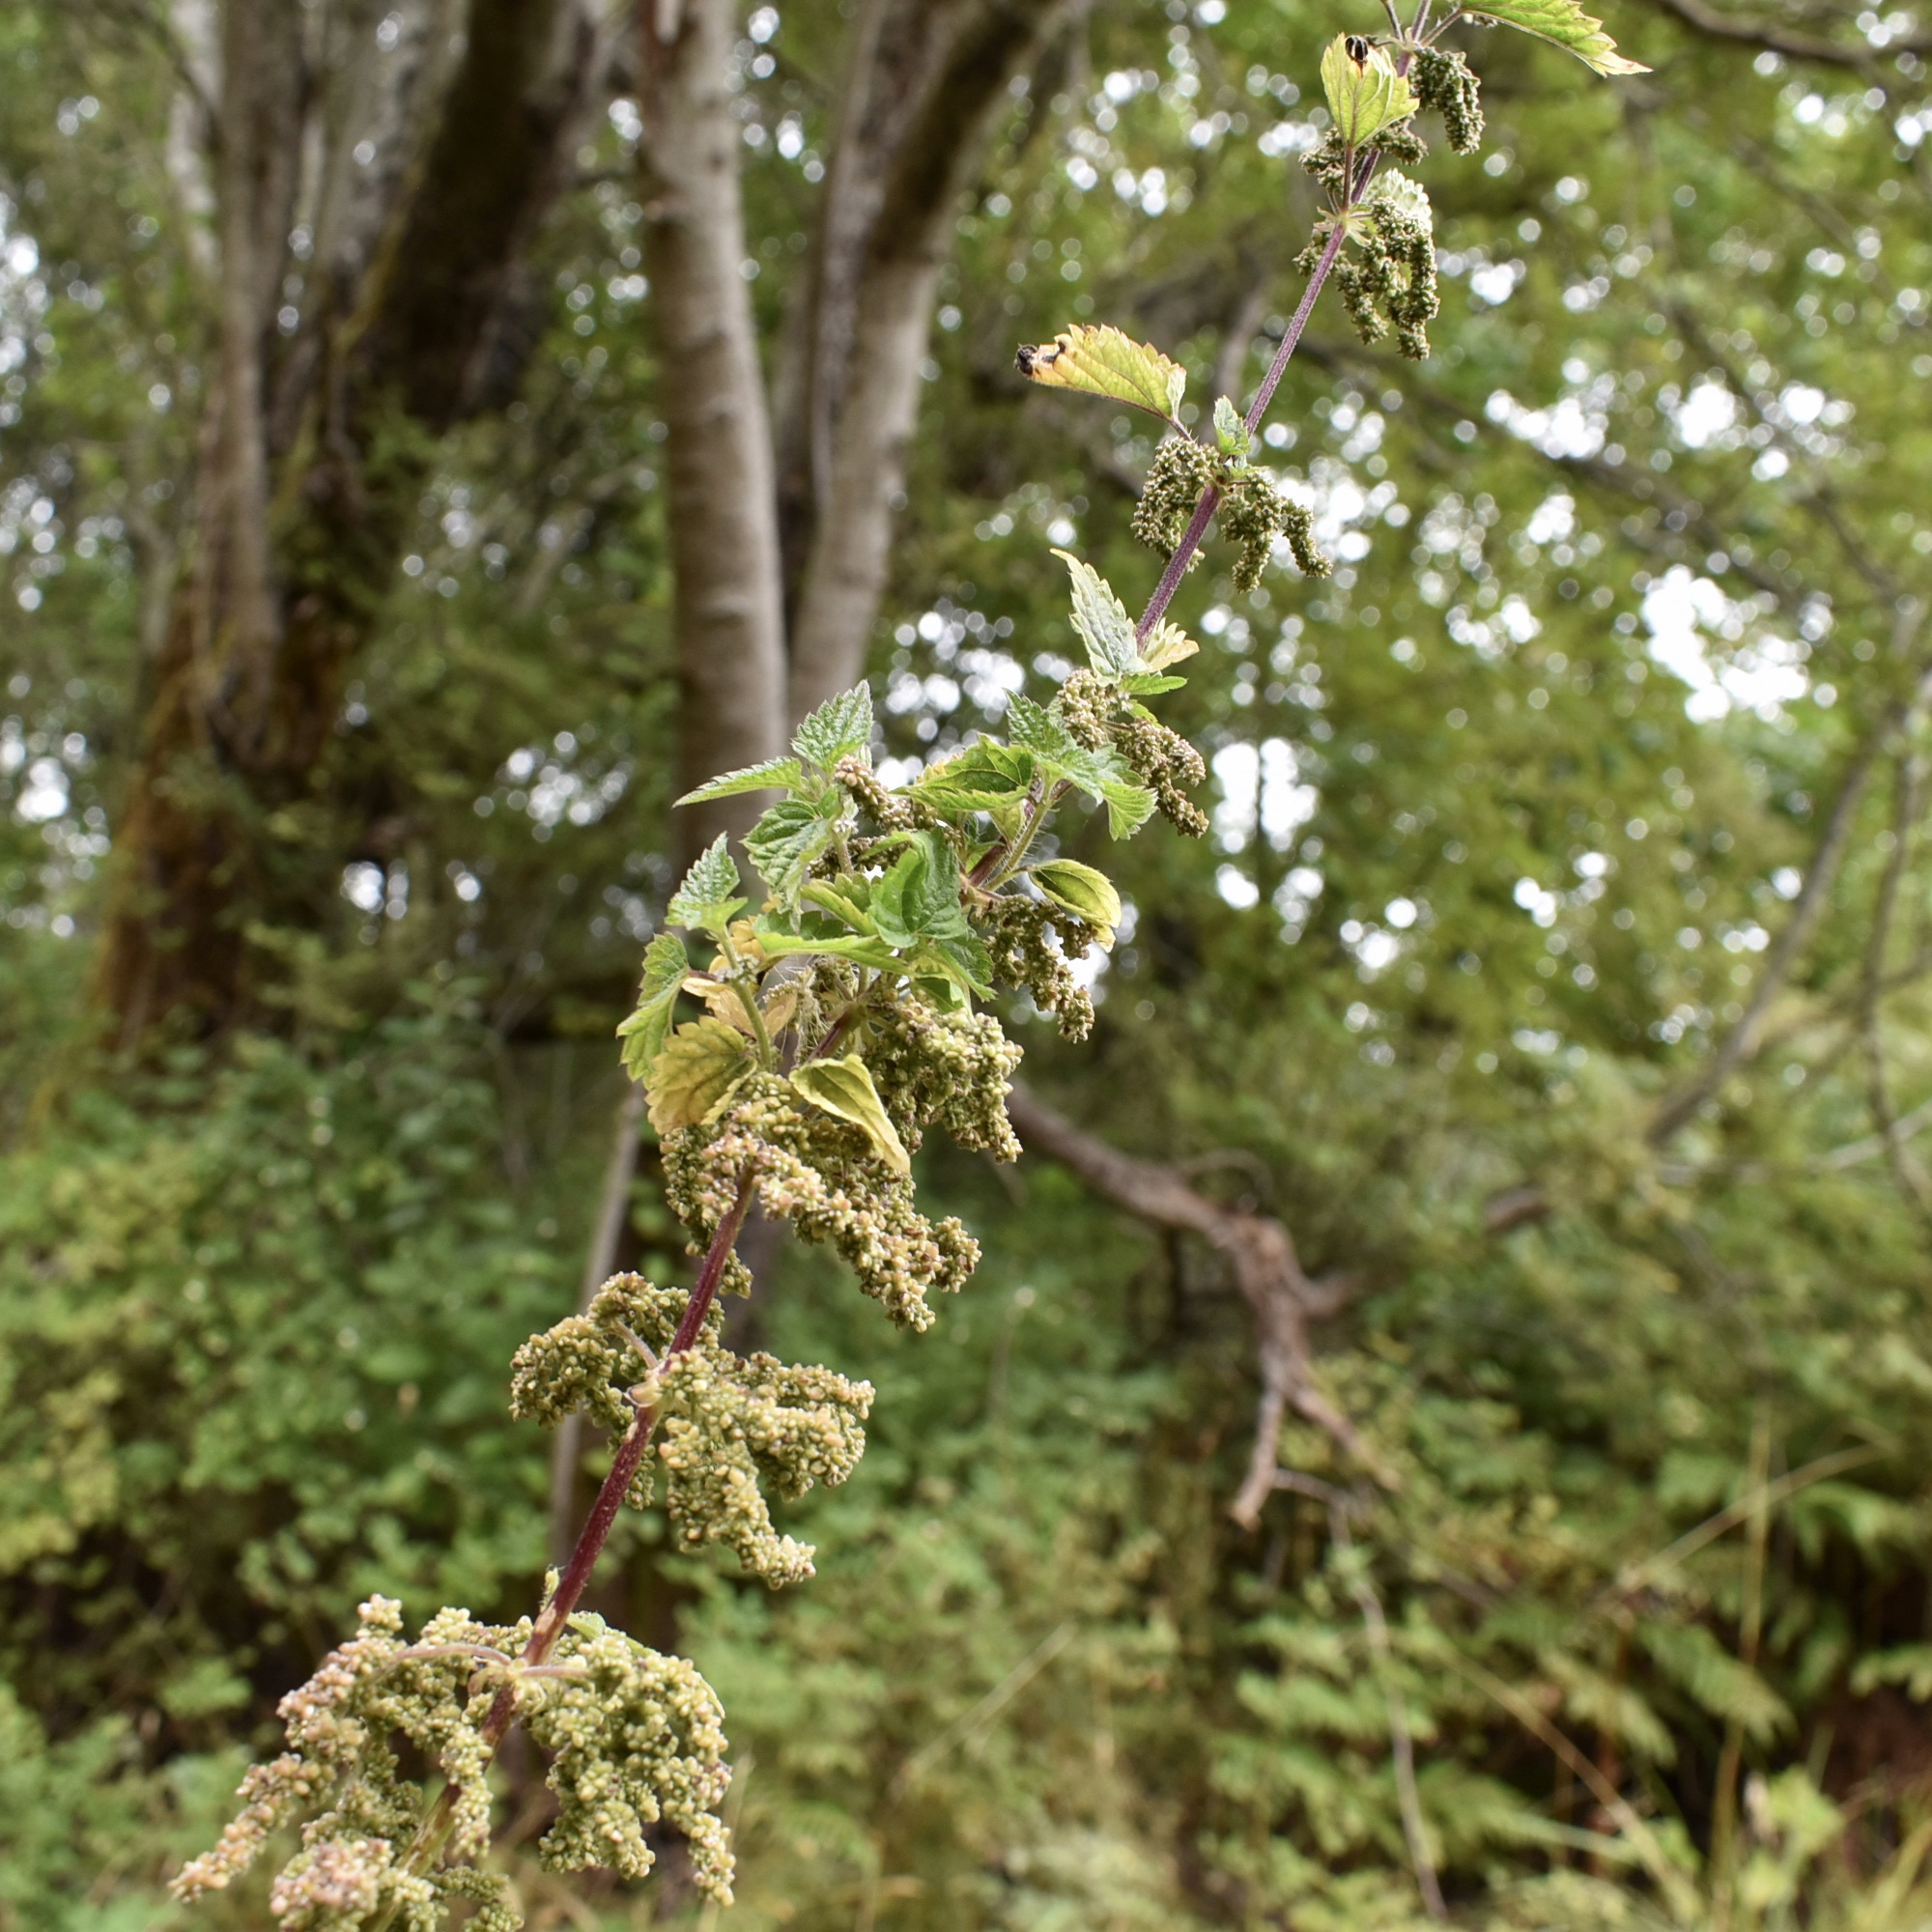 Stinging Nettle with unripe green seed clusters at the perfect stage to harvest.